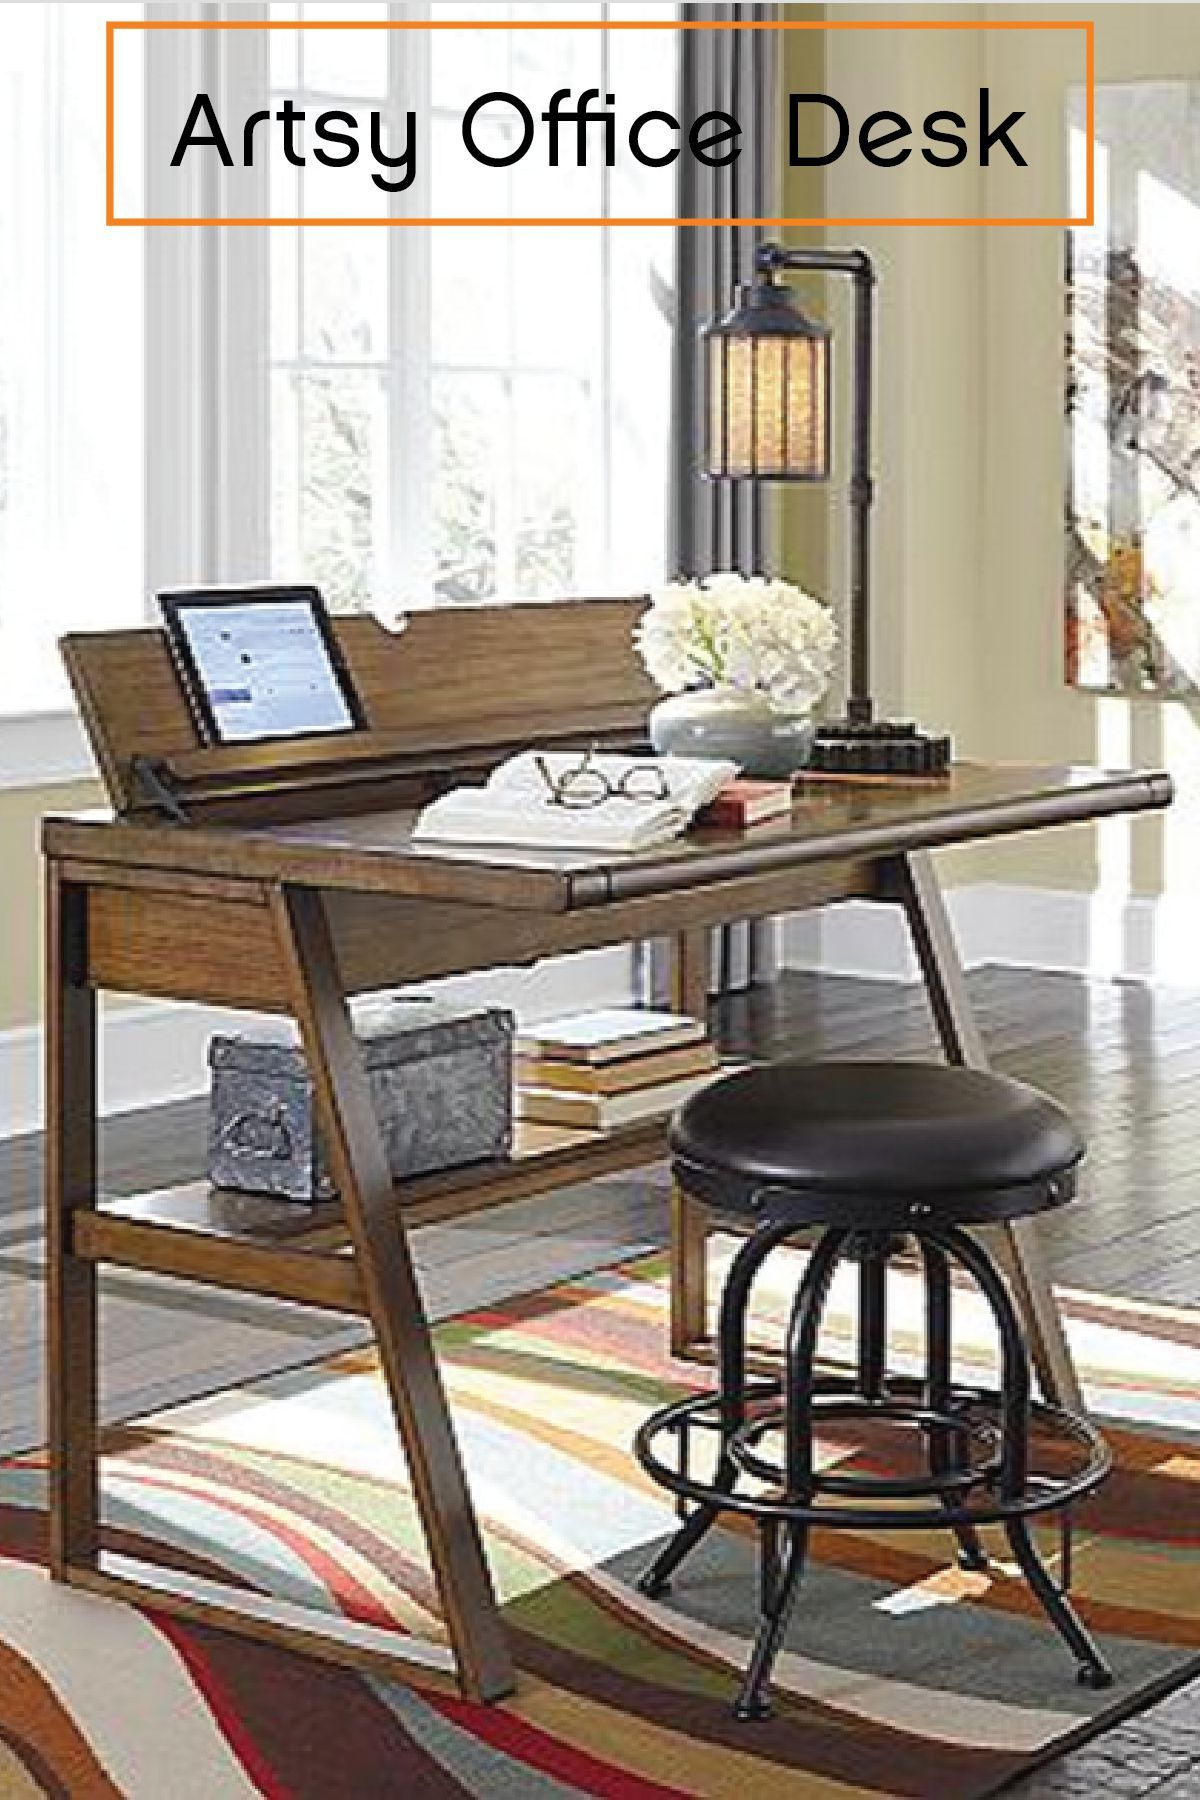 This Home Office Desk Artfully Blends Rustic Charm And Modern Polish. The  Hinged, Flip